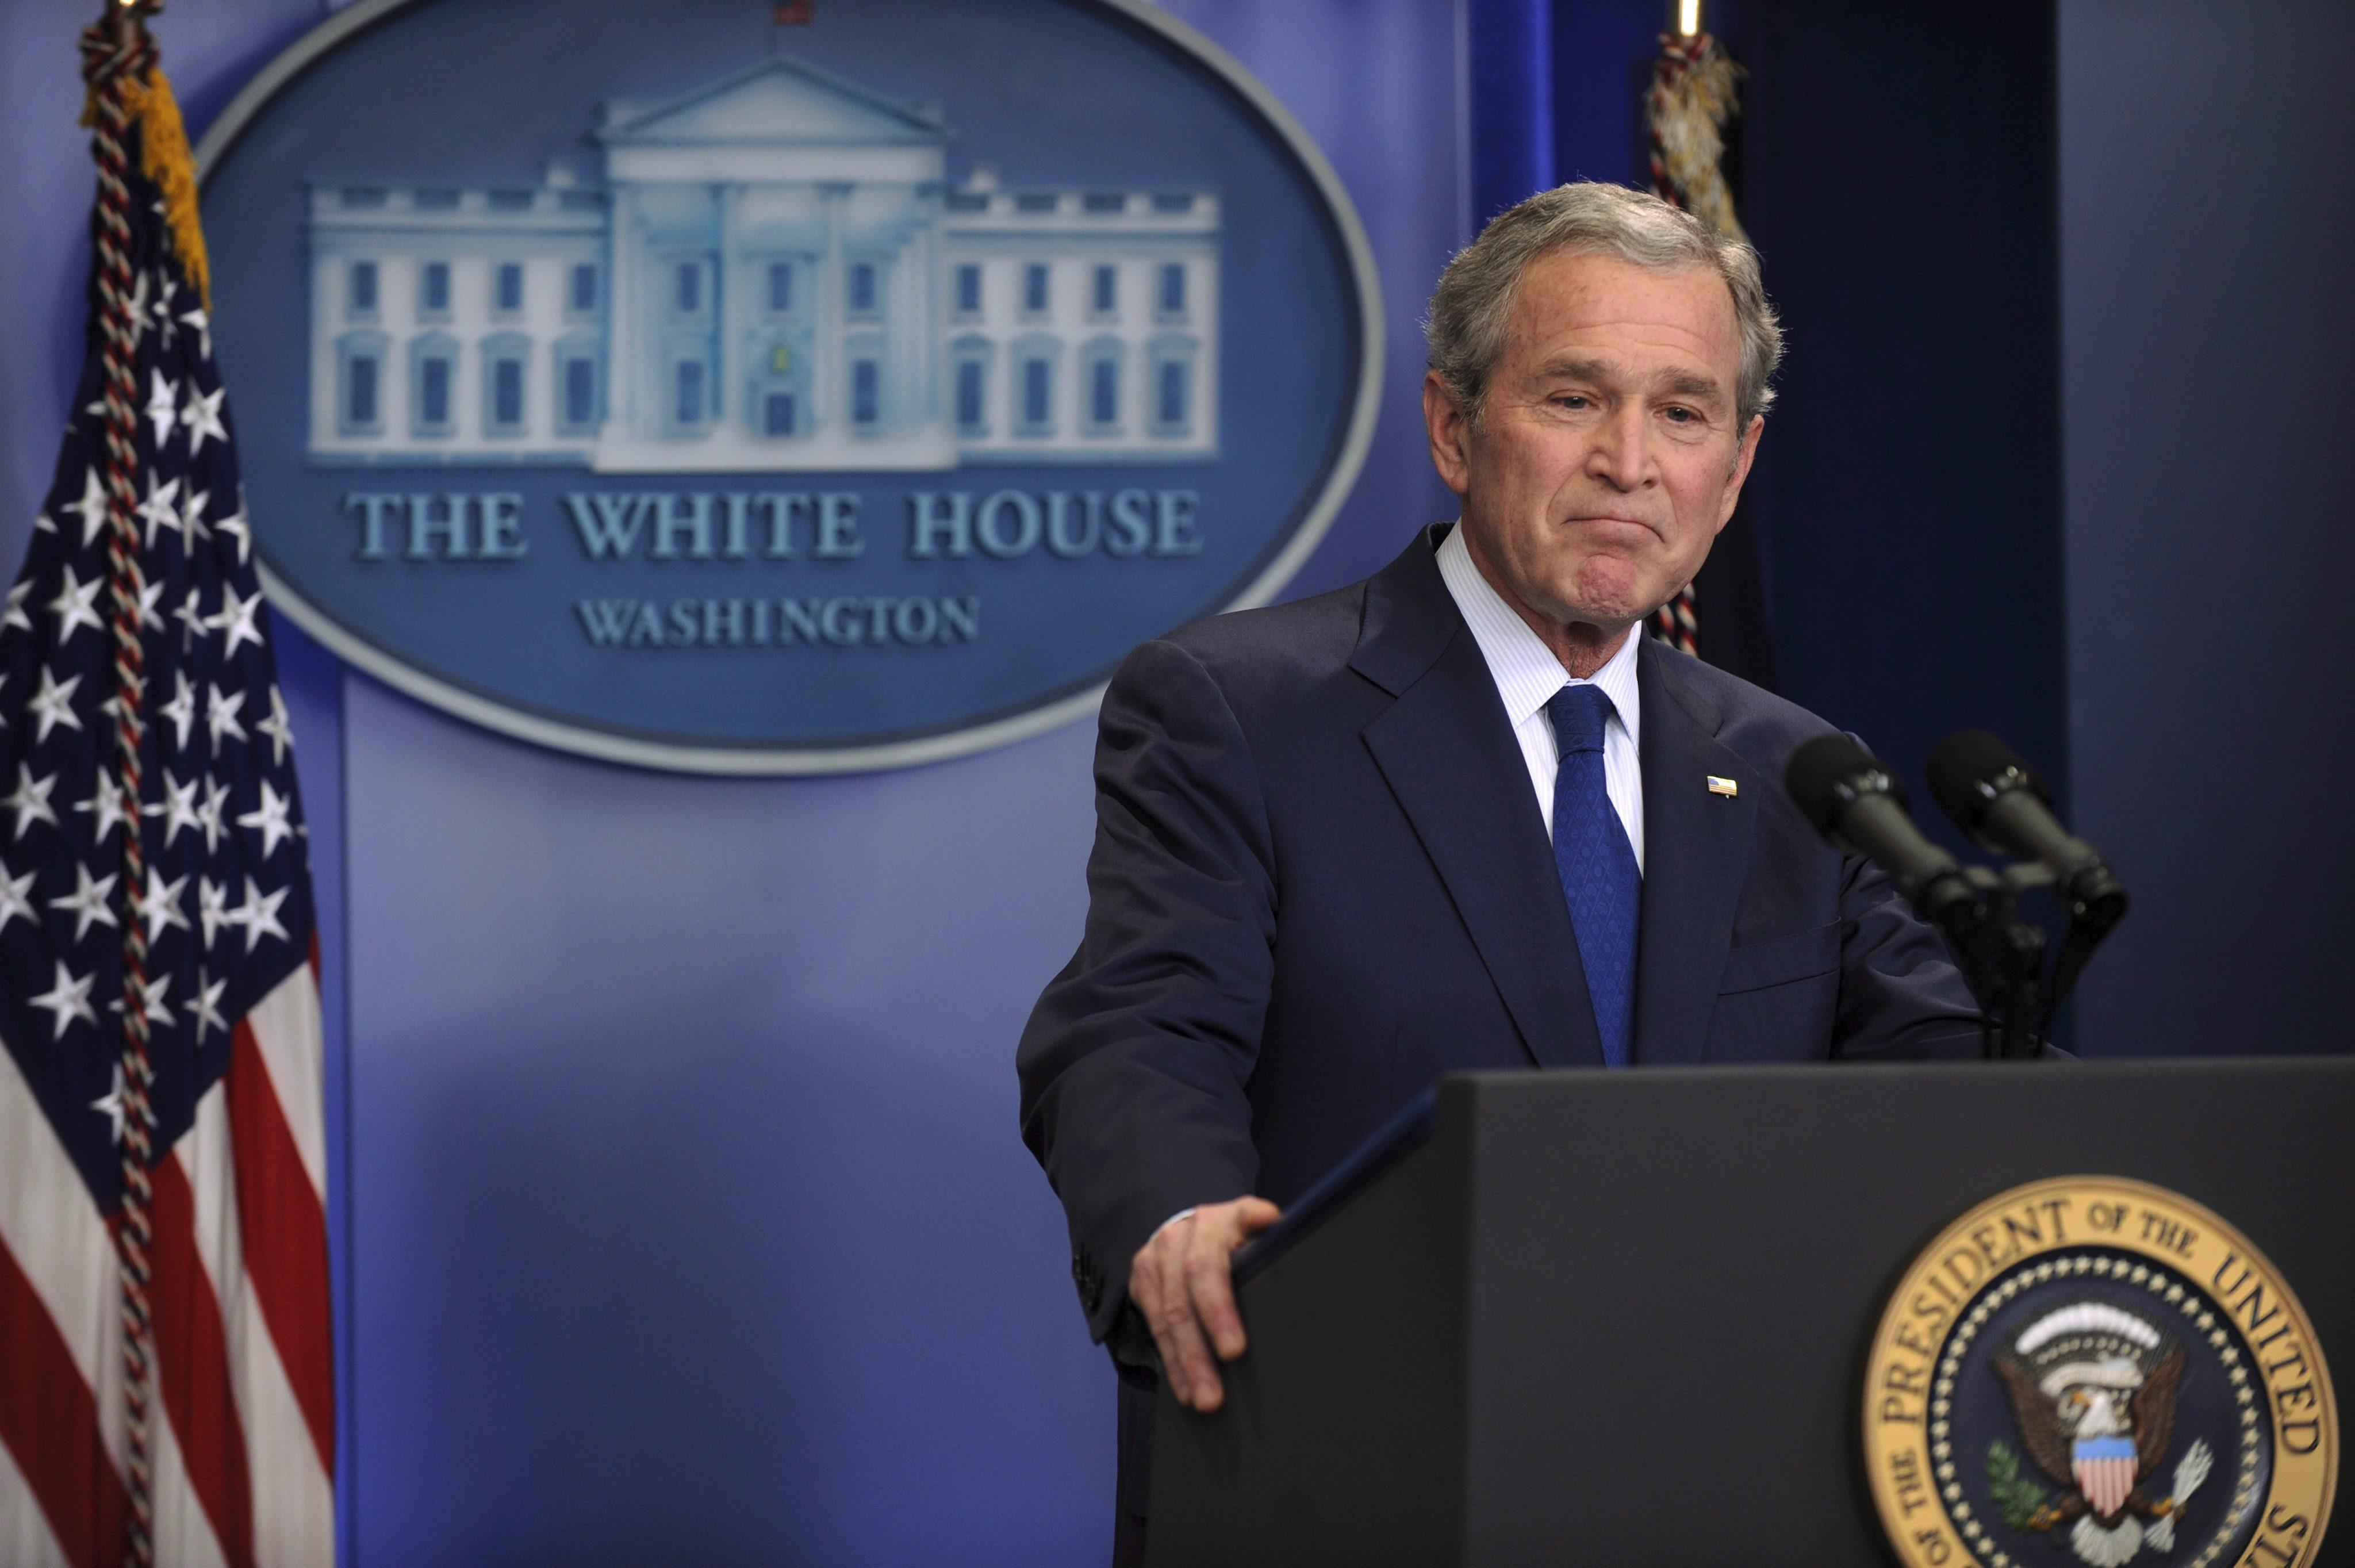 US President George W. Bush hosts final press conference of his presidency in the White House press briefing room.